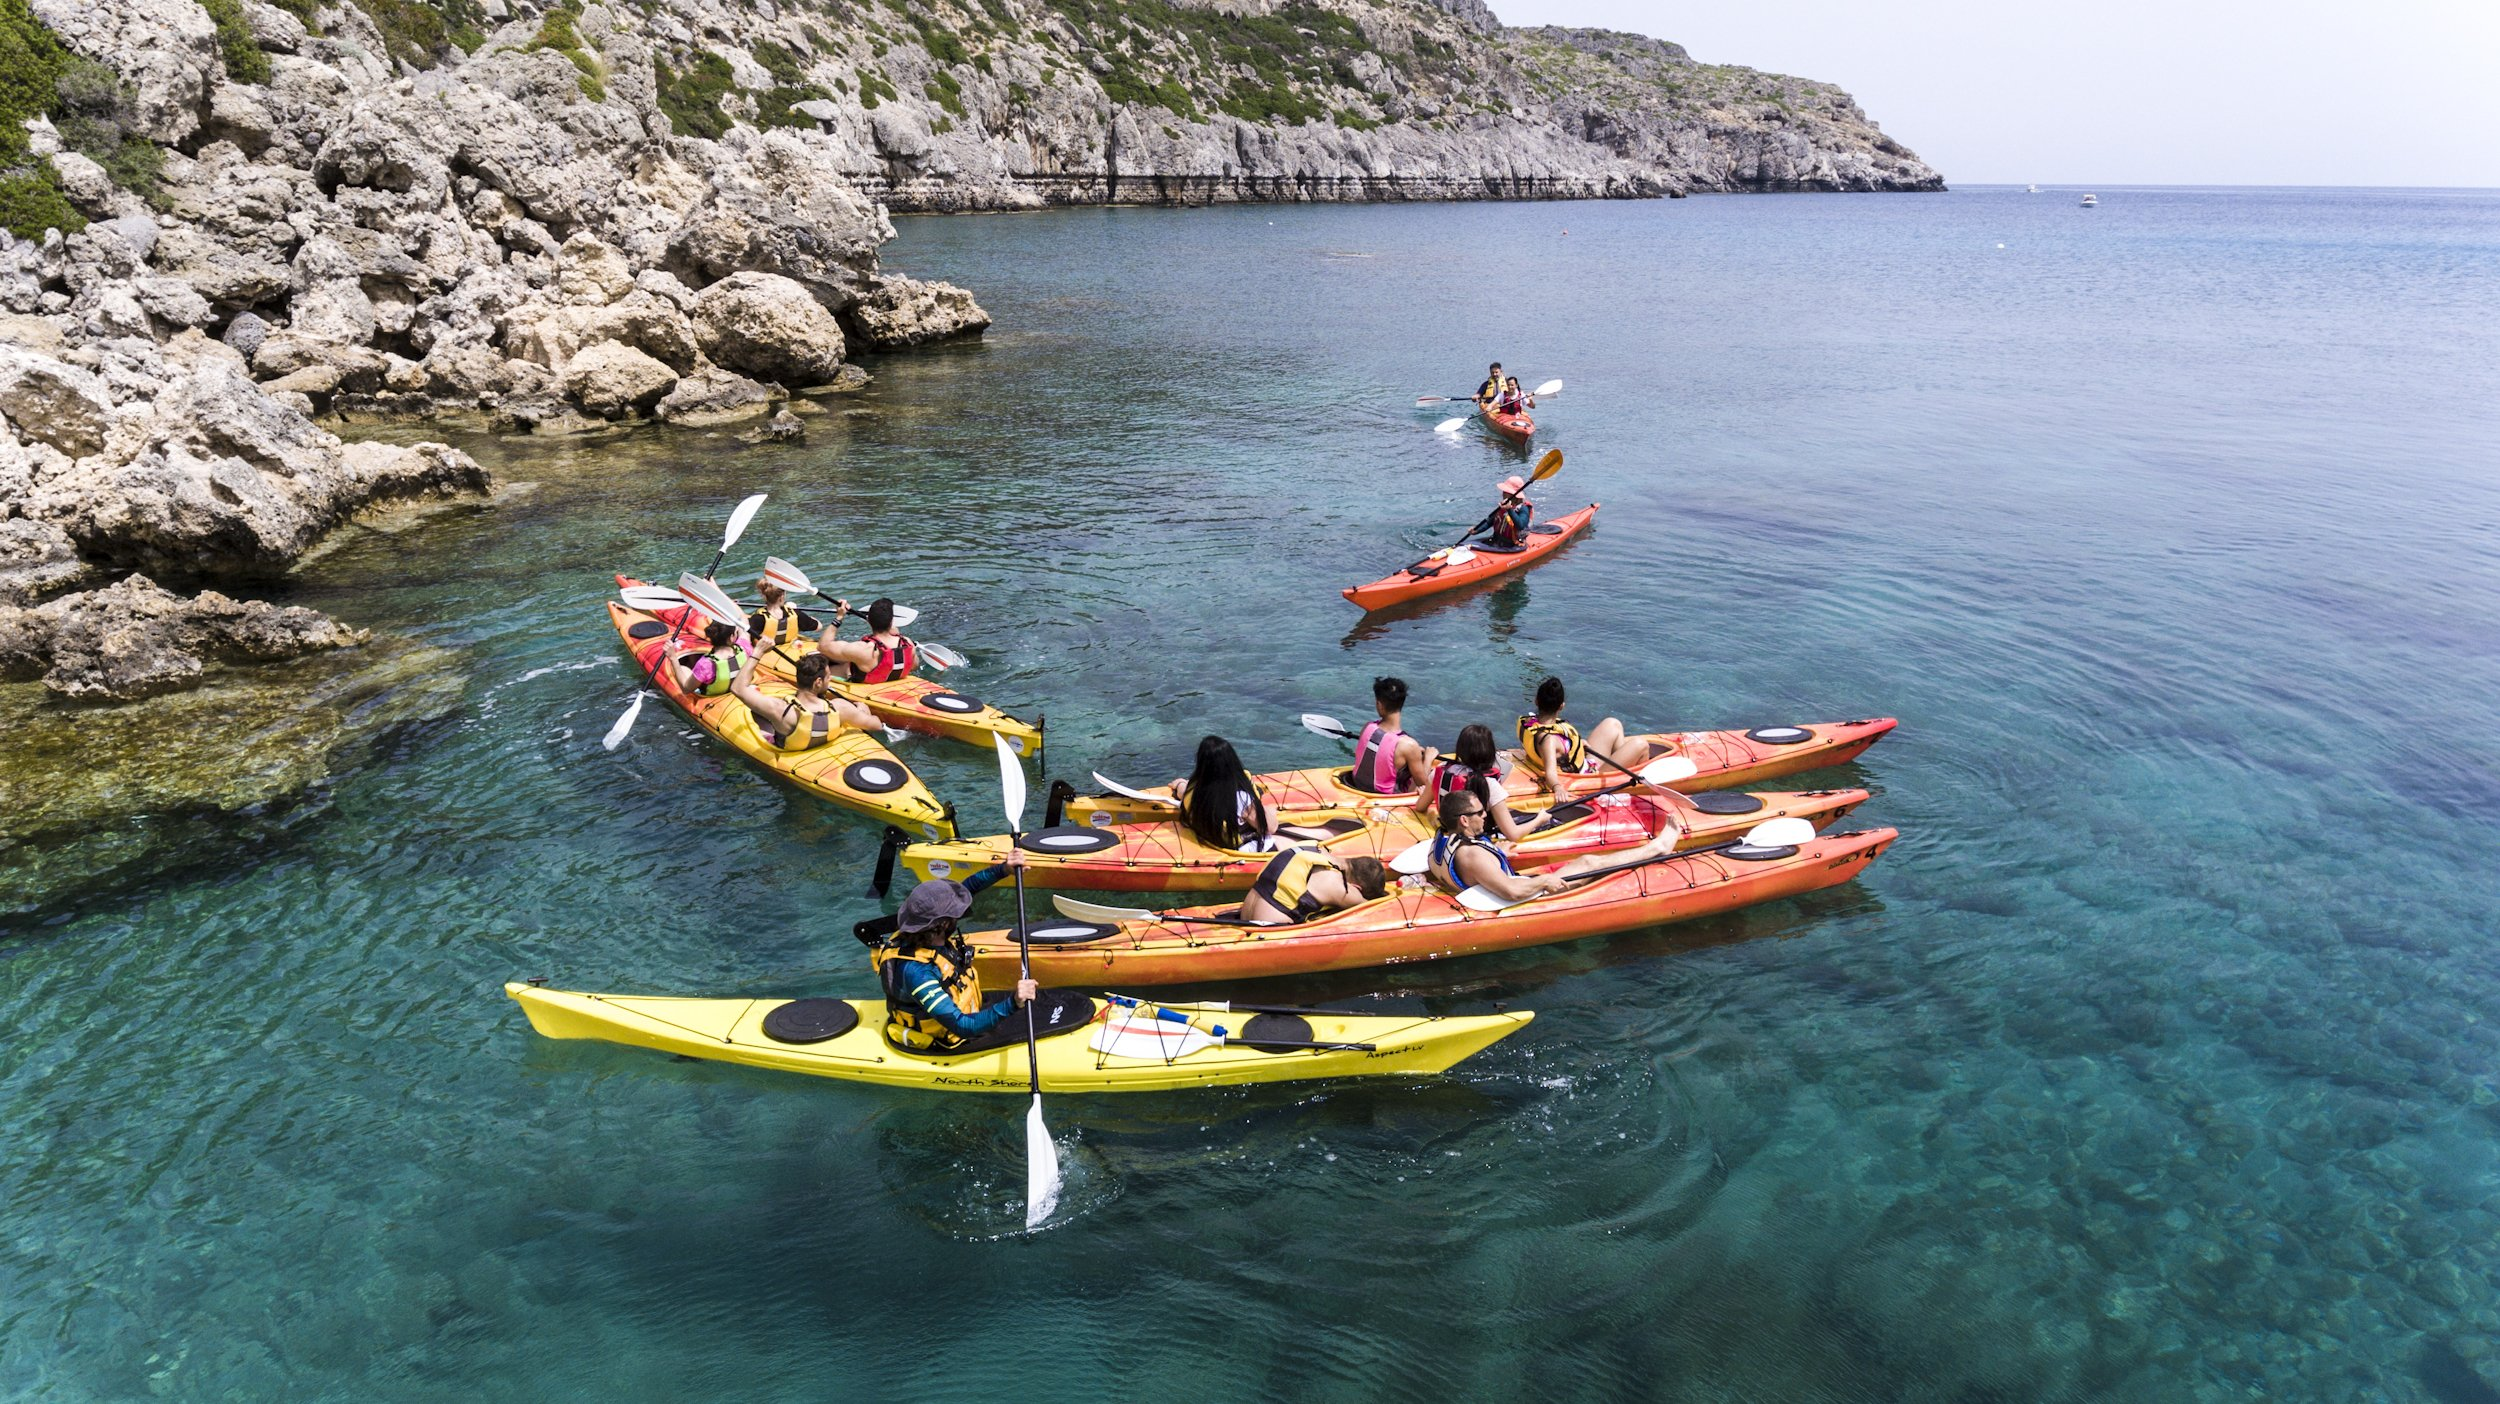 Paddle Across The Coastline Passing Wonderful Sea Caves And Beautiful Rock Formations In Our Sea Kayak Day Tour